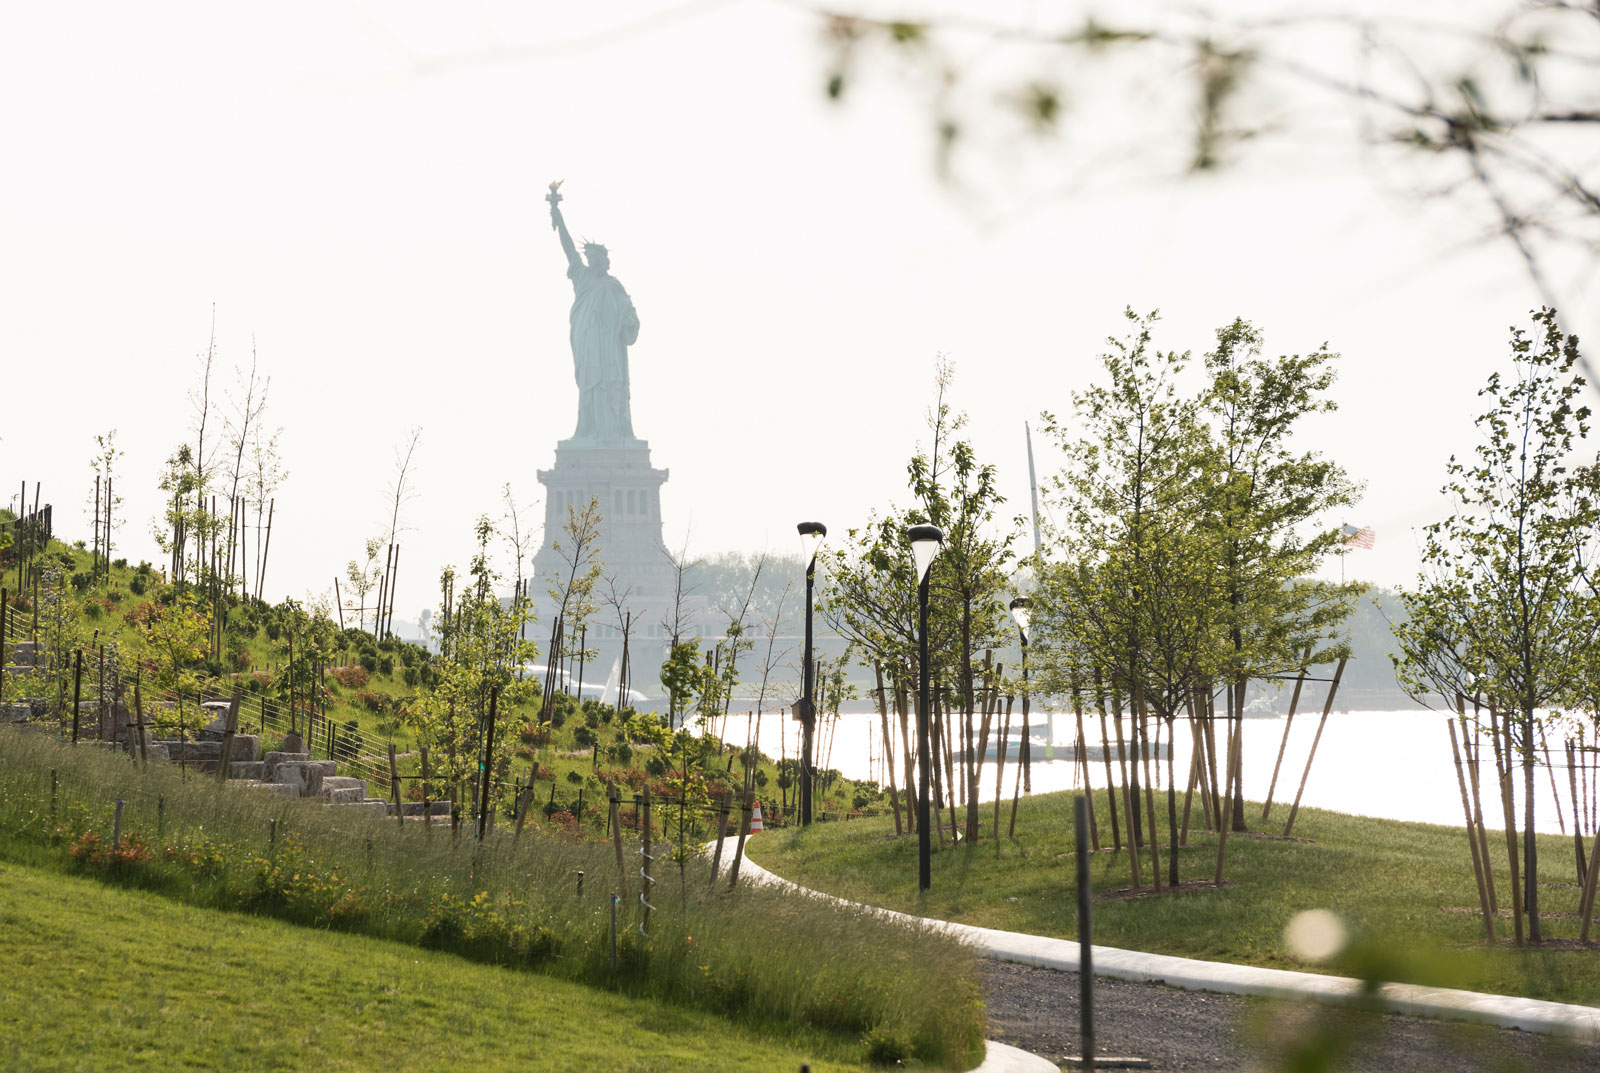 Timothy Schenck/The Trust for Governors Island